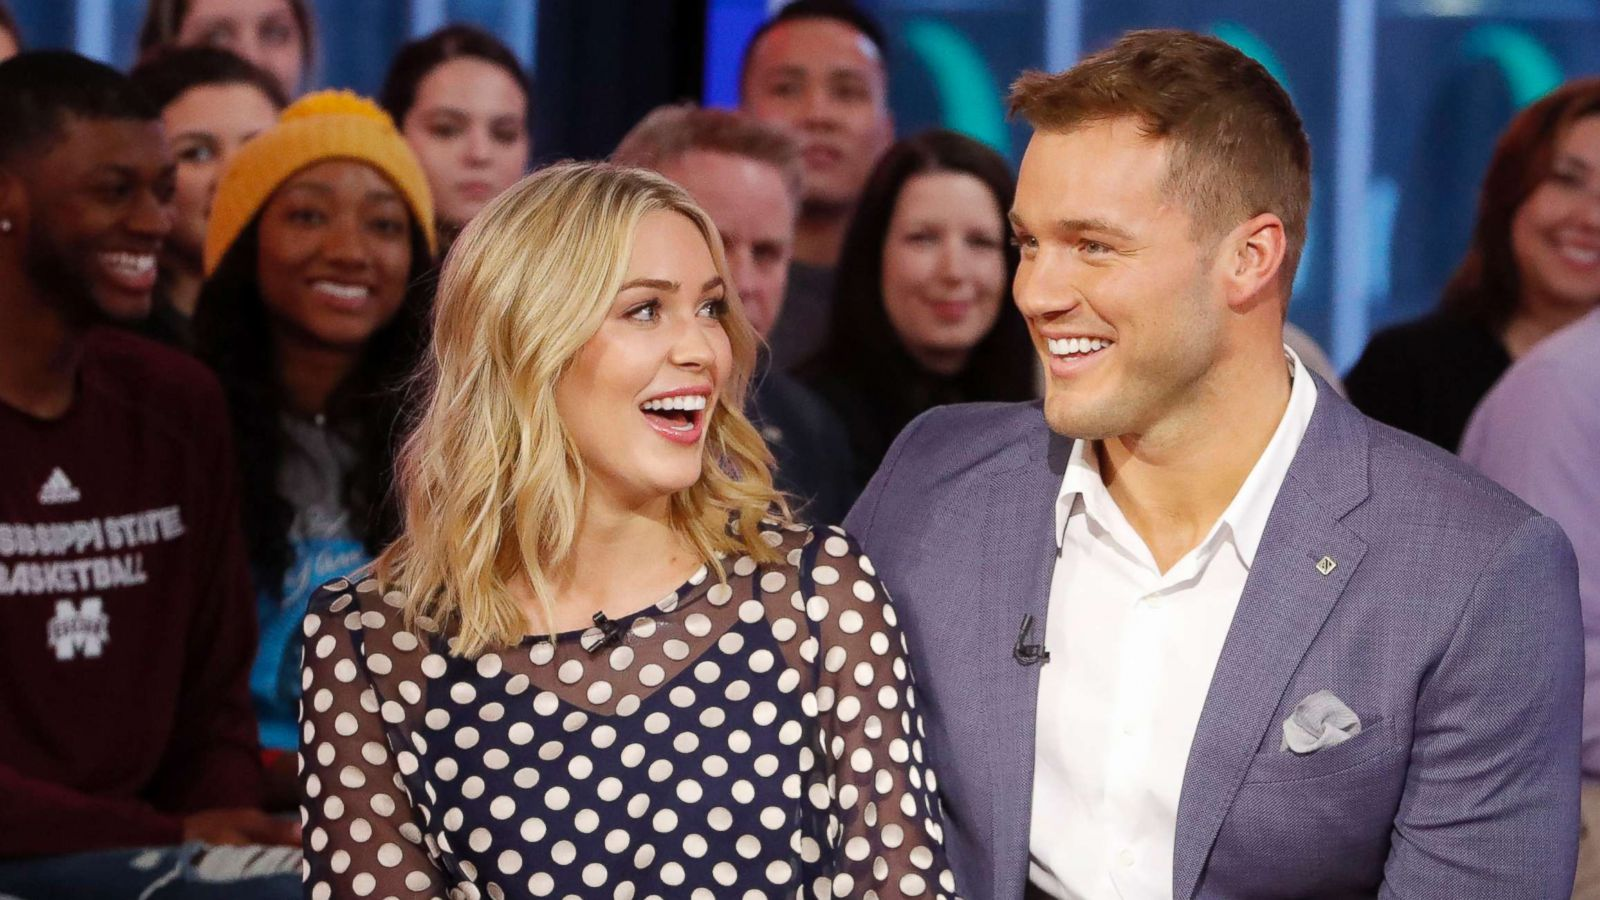 Bachelor Colton Underwood On Shocking Finale With Cassie We Have Talked About An Engagement Gma